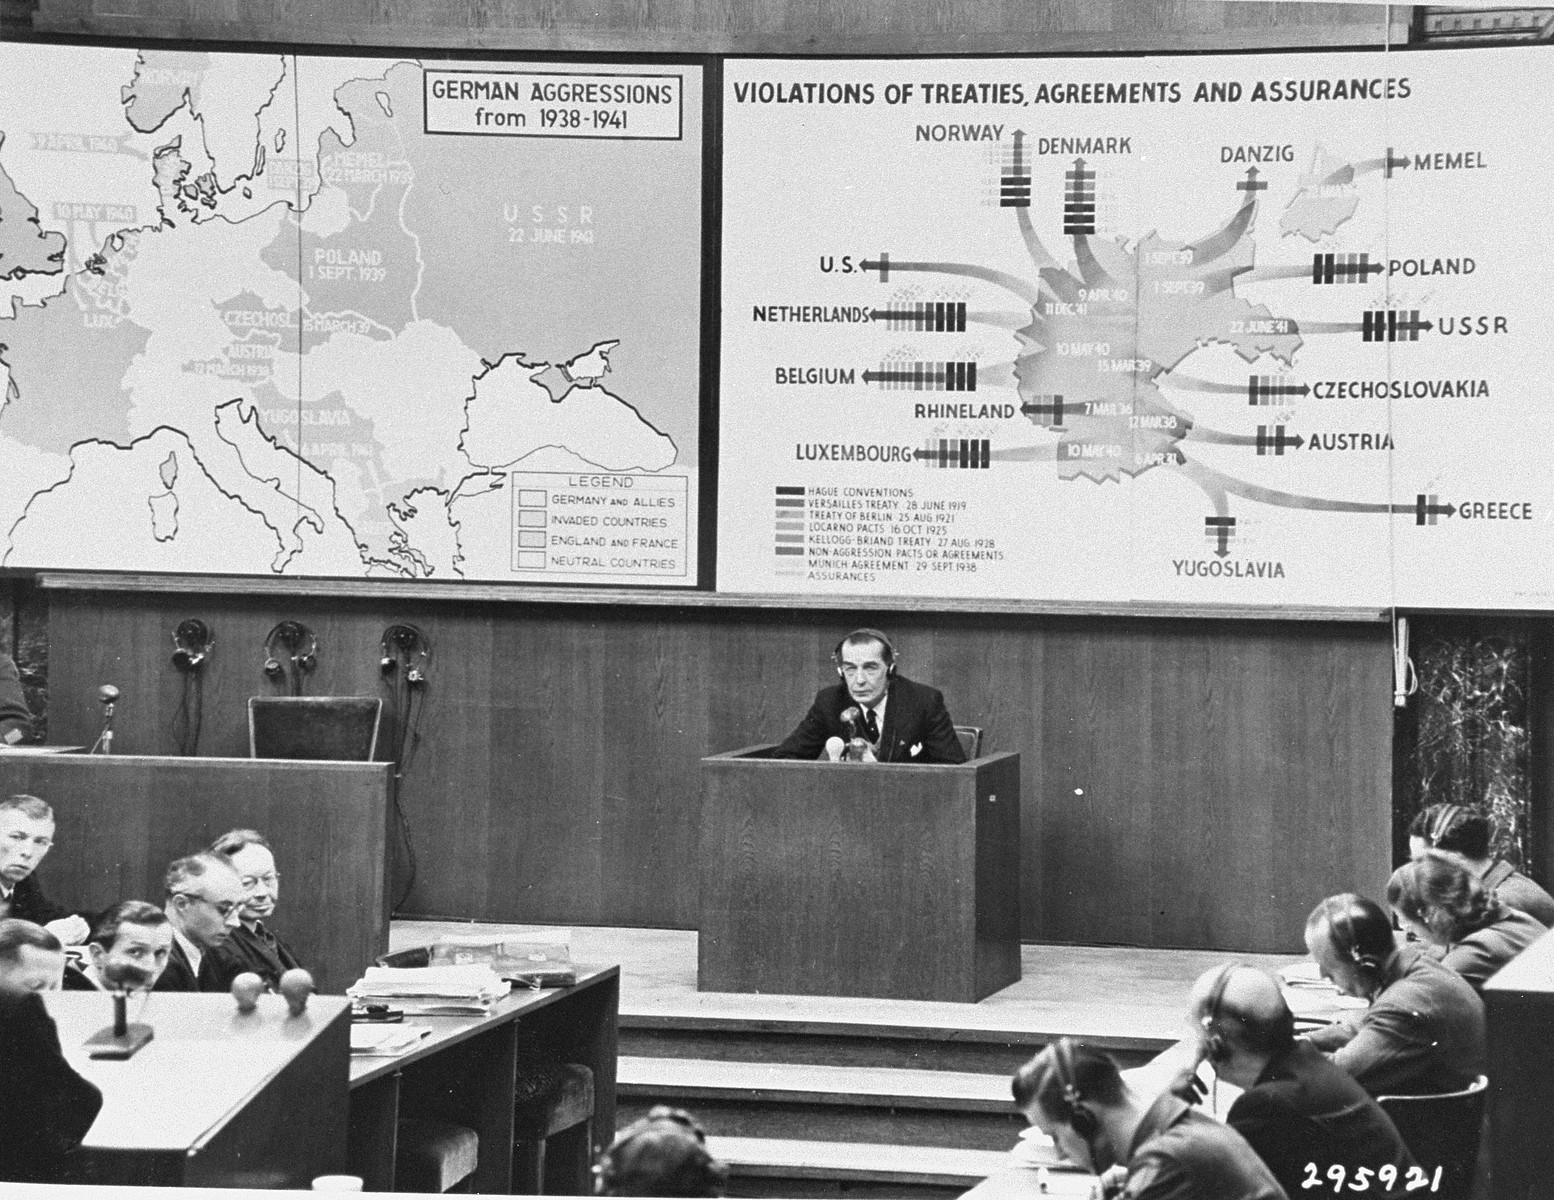 Theodor von Hornbostel testifies for the prosecution during the Ministries Trial. Hornbostel served as the chief of the Political Department in the Austrian Ministry for Foreign Affairs under Chancellors Dollfuss and Schuschnigg, 1933-1938. Under Nazi rule he spent the years 1938 through 1943 in Dachau and Buchenwald.